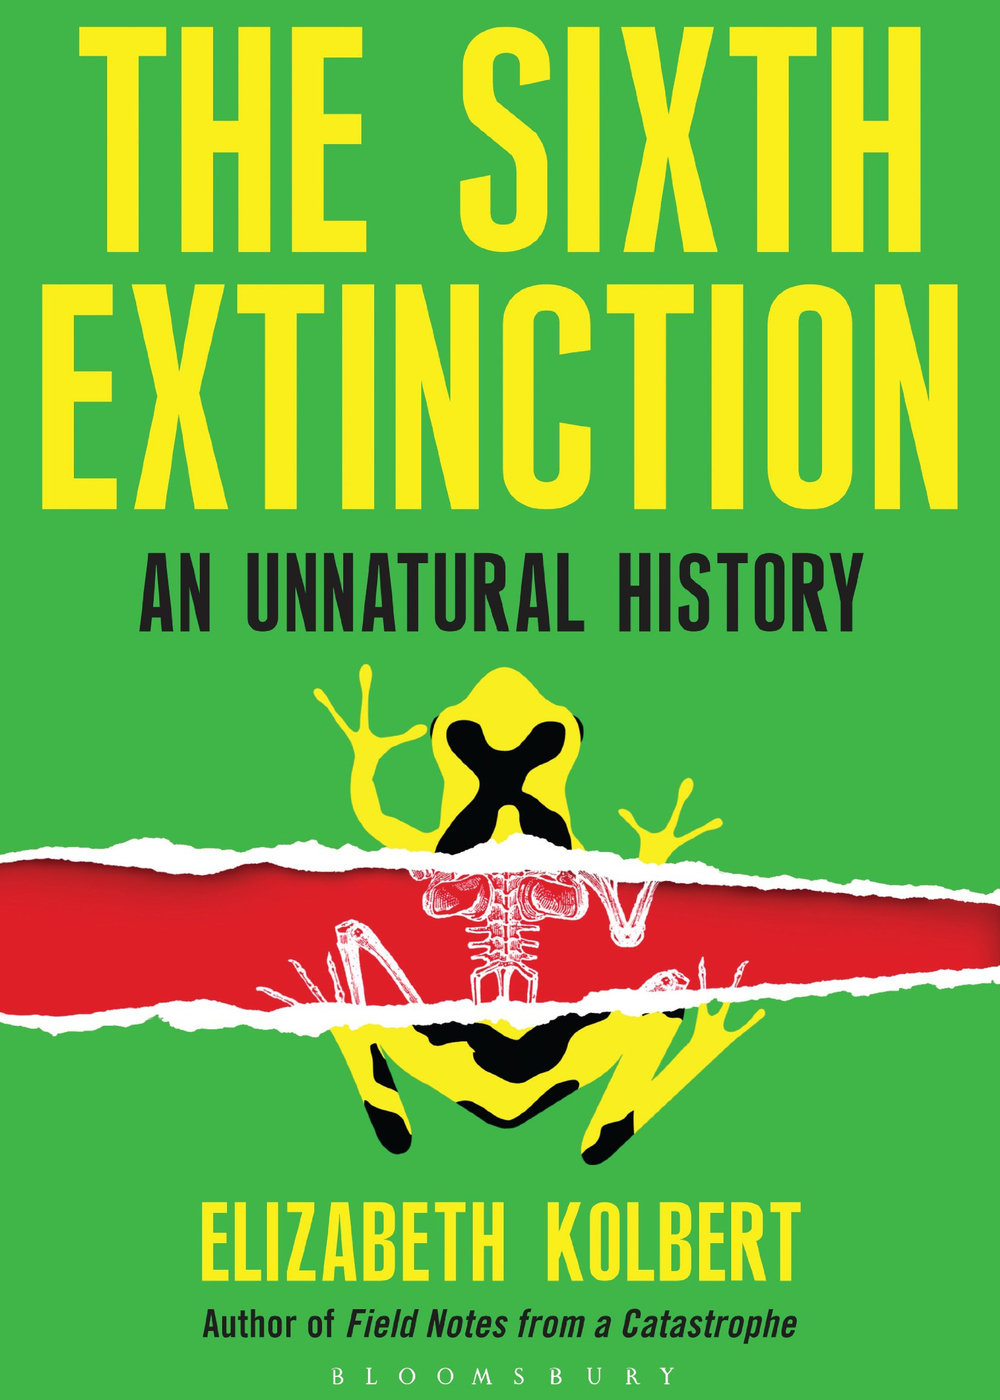 Kolbert, Elizabeth - The Sixth Extinction.jpg